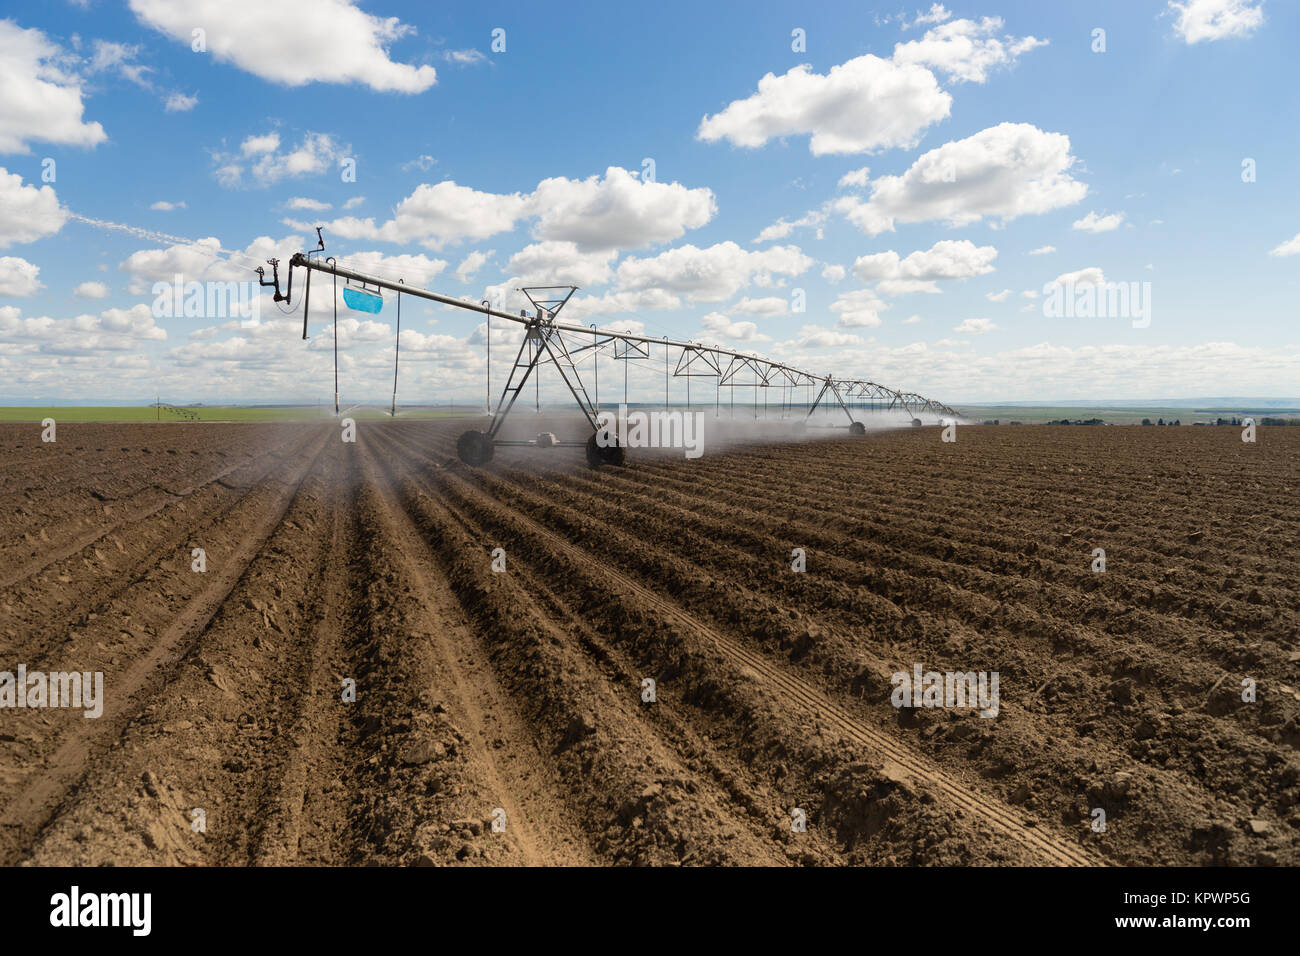 Farm Watering System Stock Photos & Farm Watering System ...